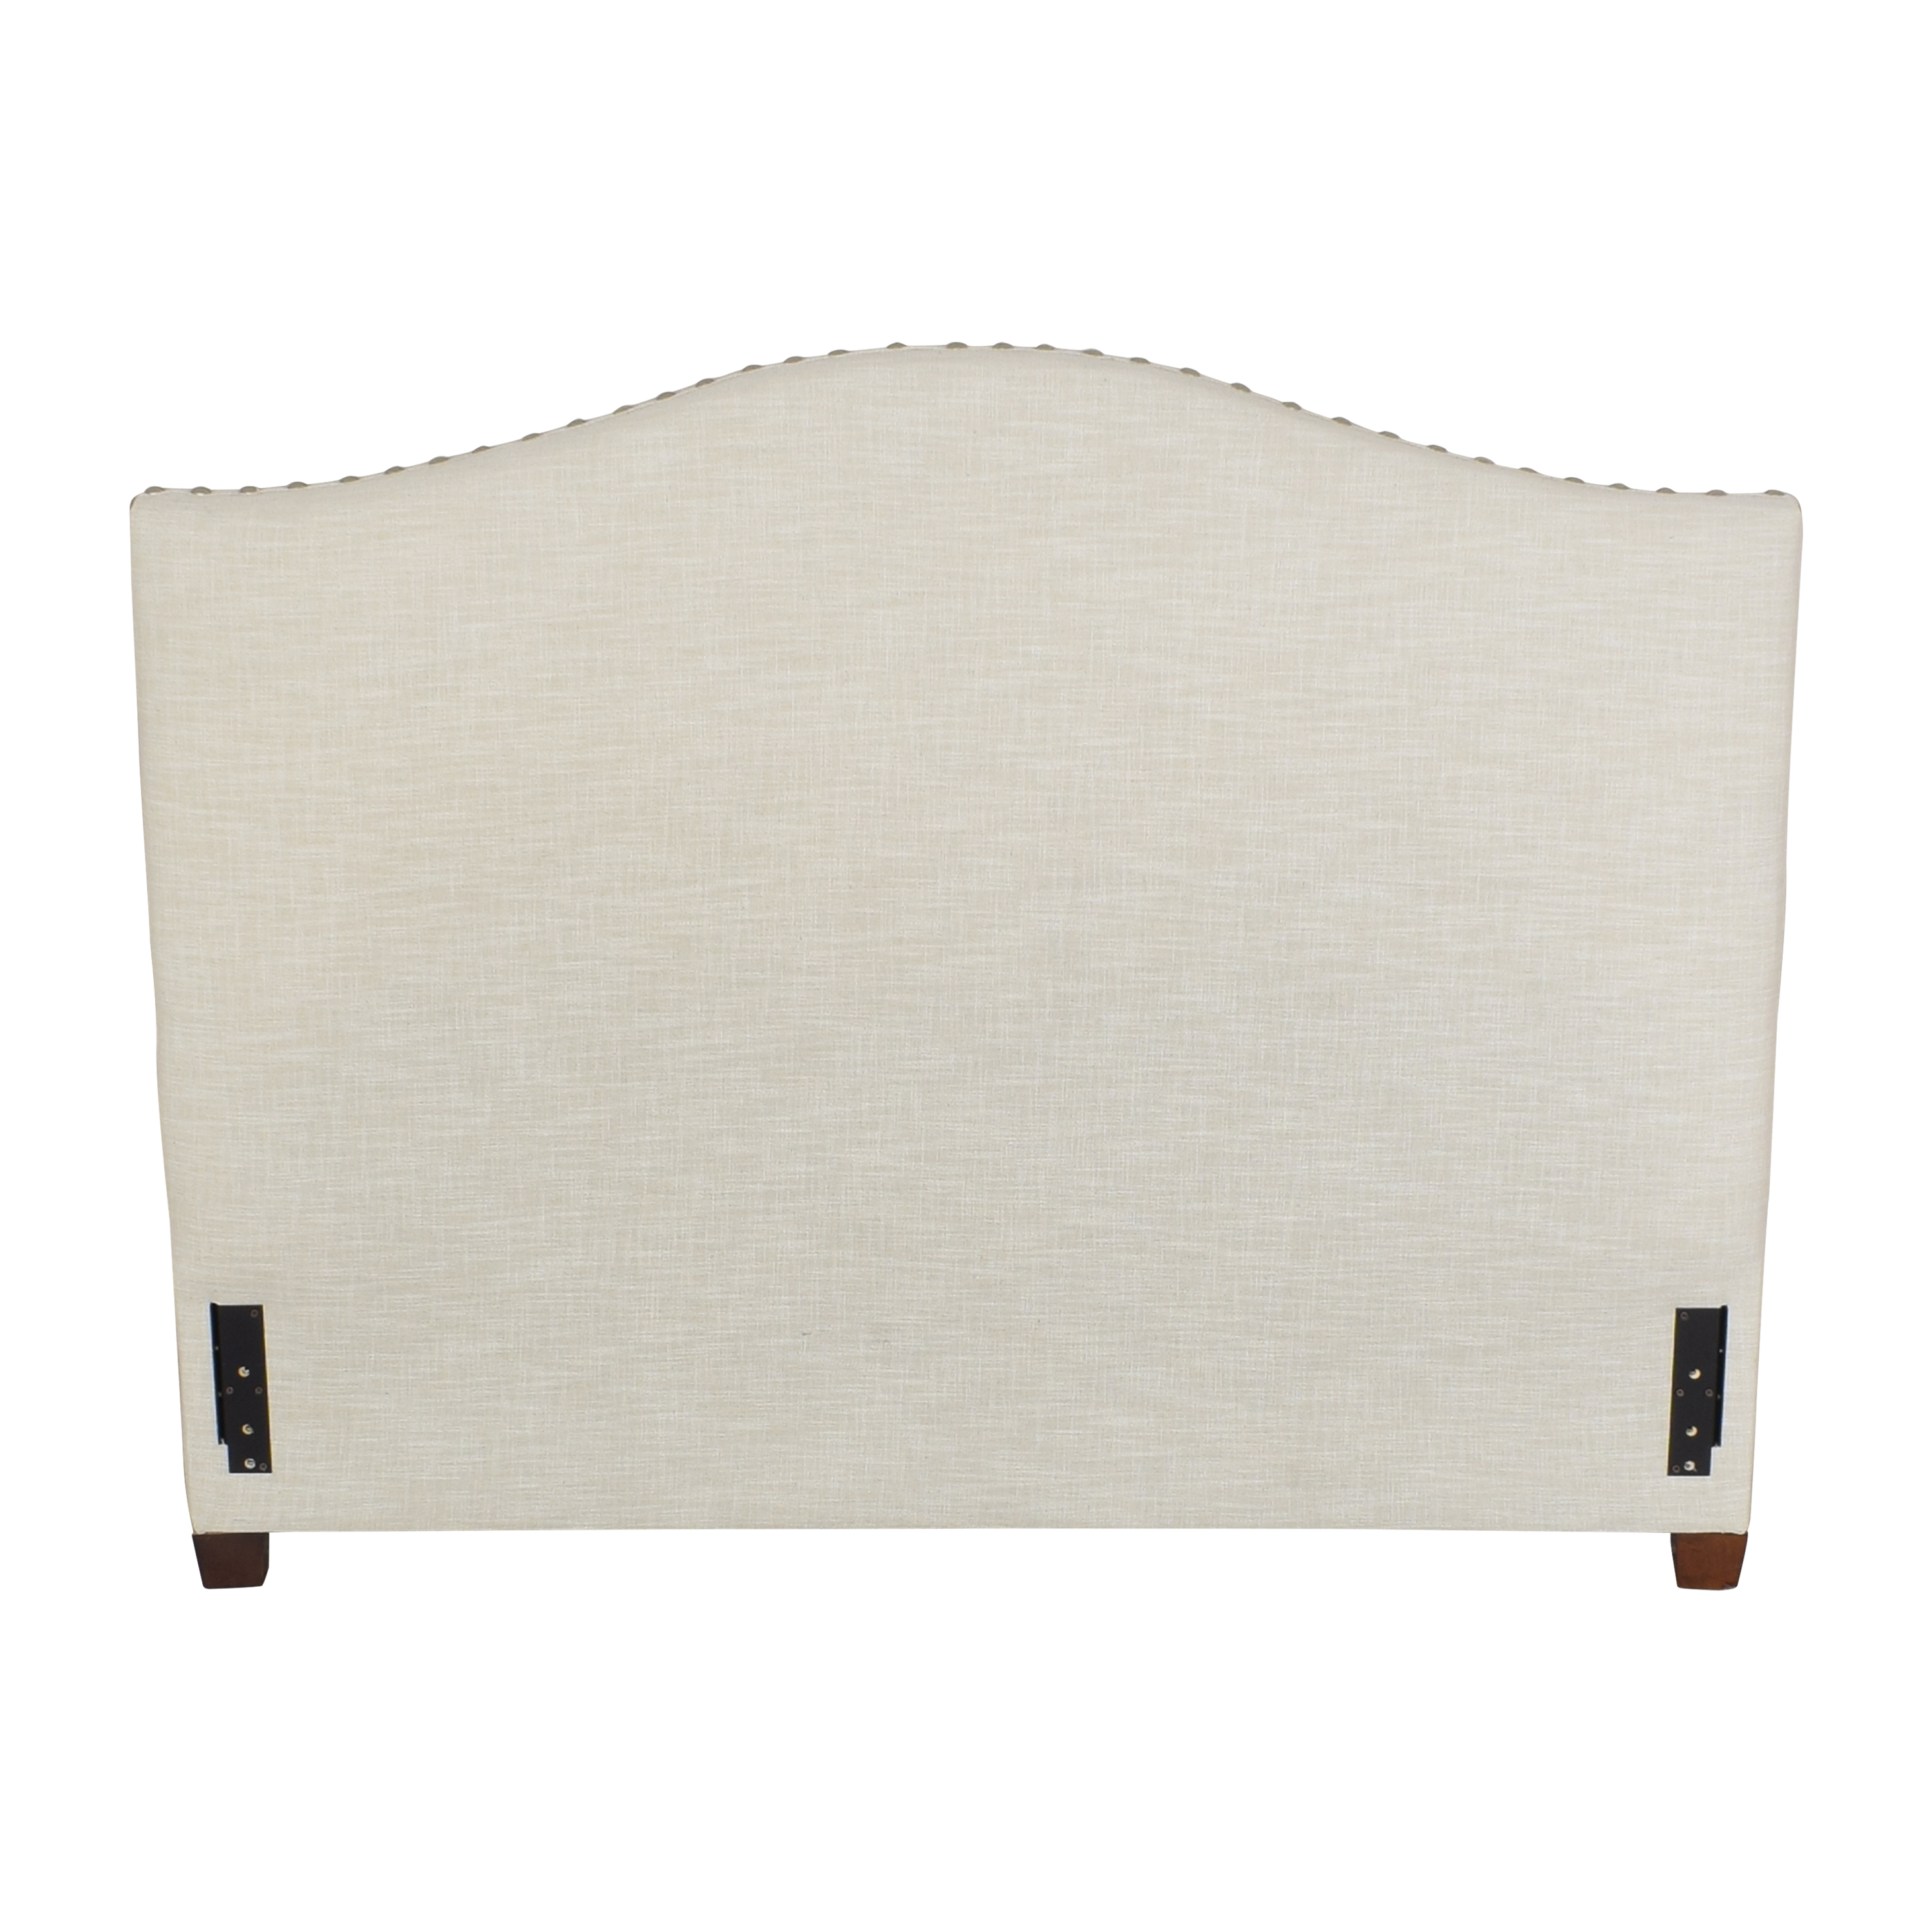 Pottery Barn Pottery Barn Raleigh Curved Upholstered Queen Headboard